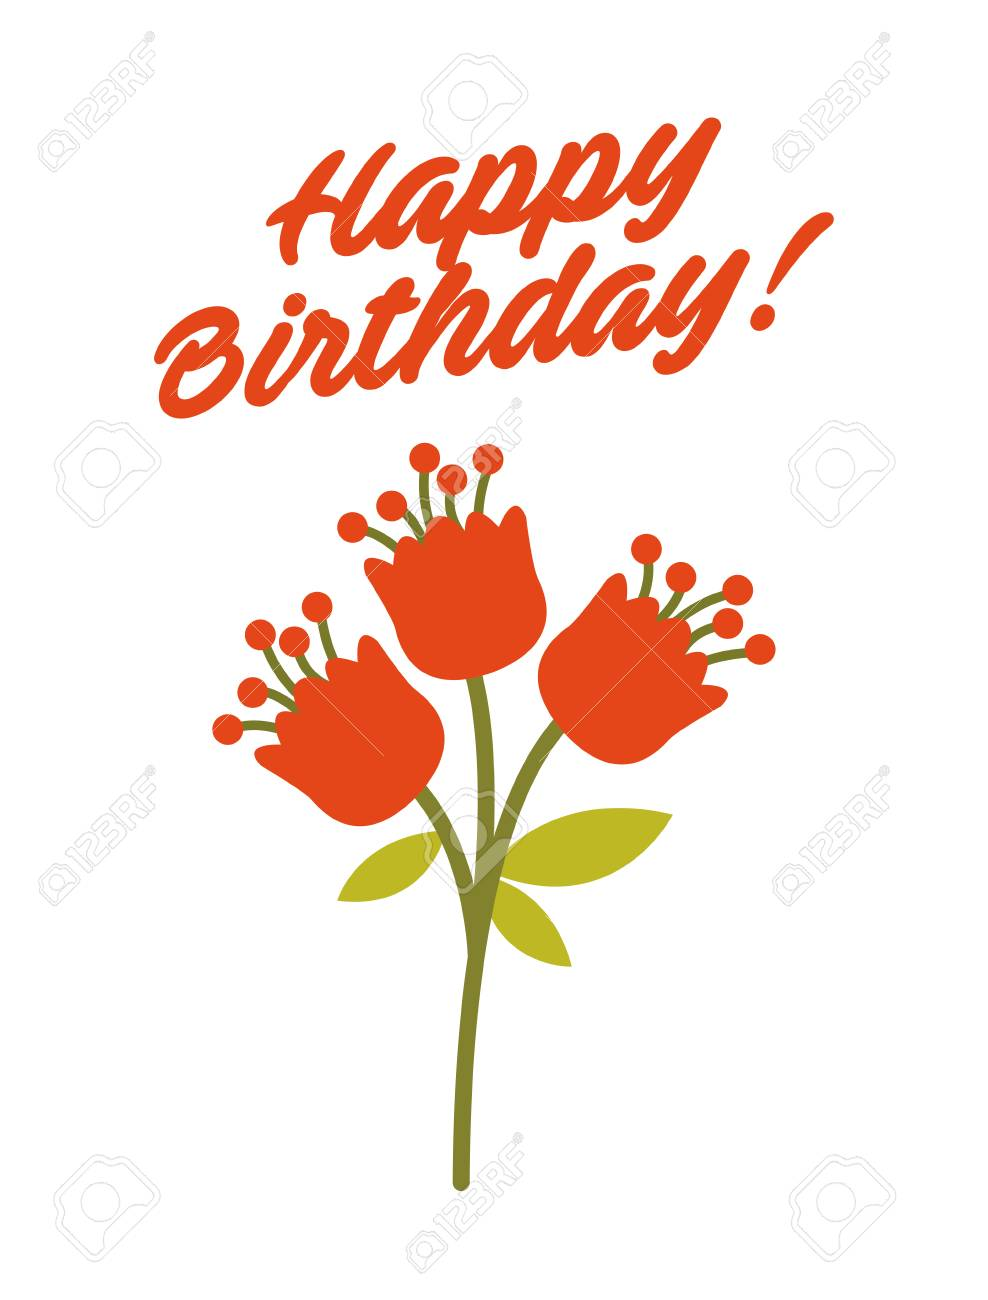 Happy Birthday Card With Flowers Icons Over White Background